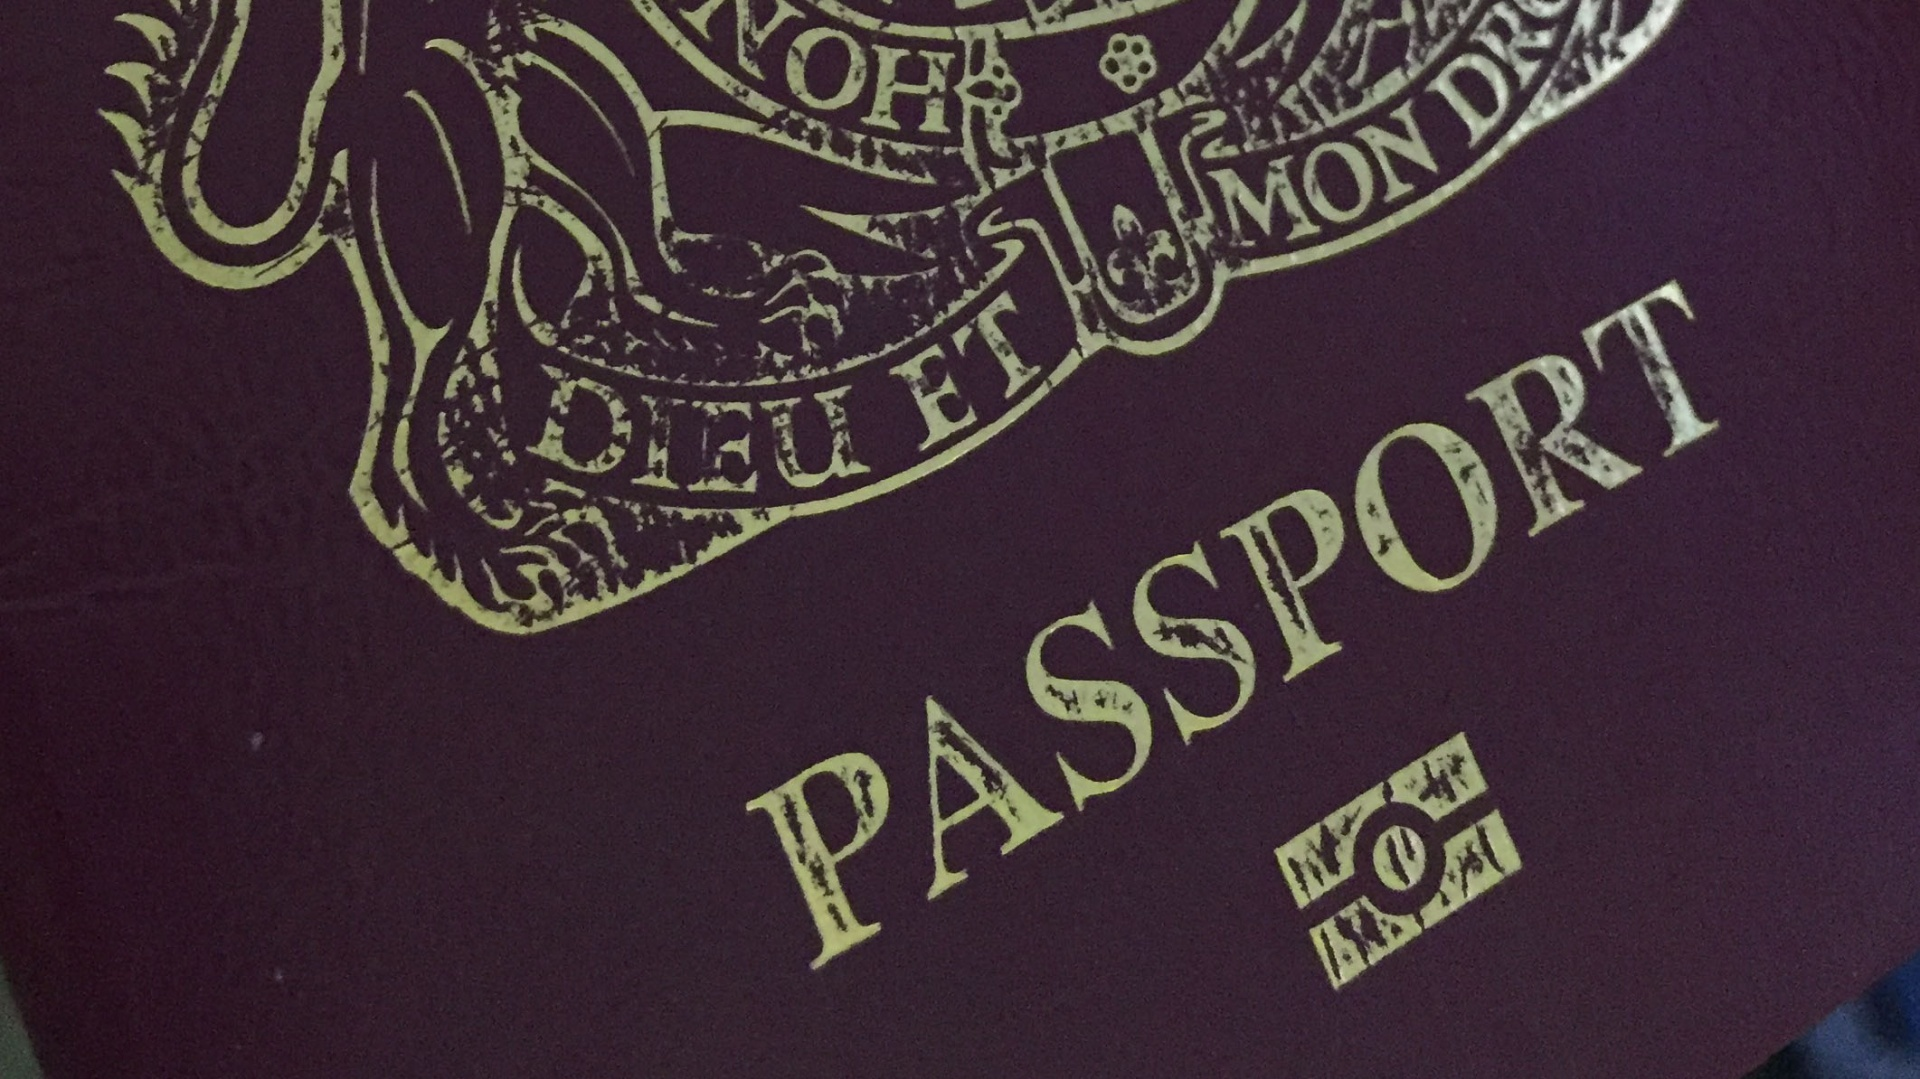 To gain access to the US you'll need to have an e-passport.